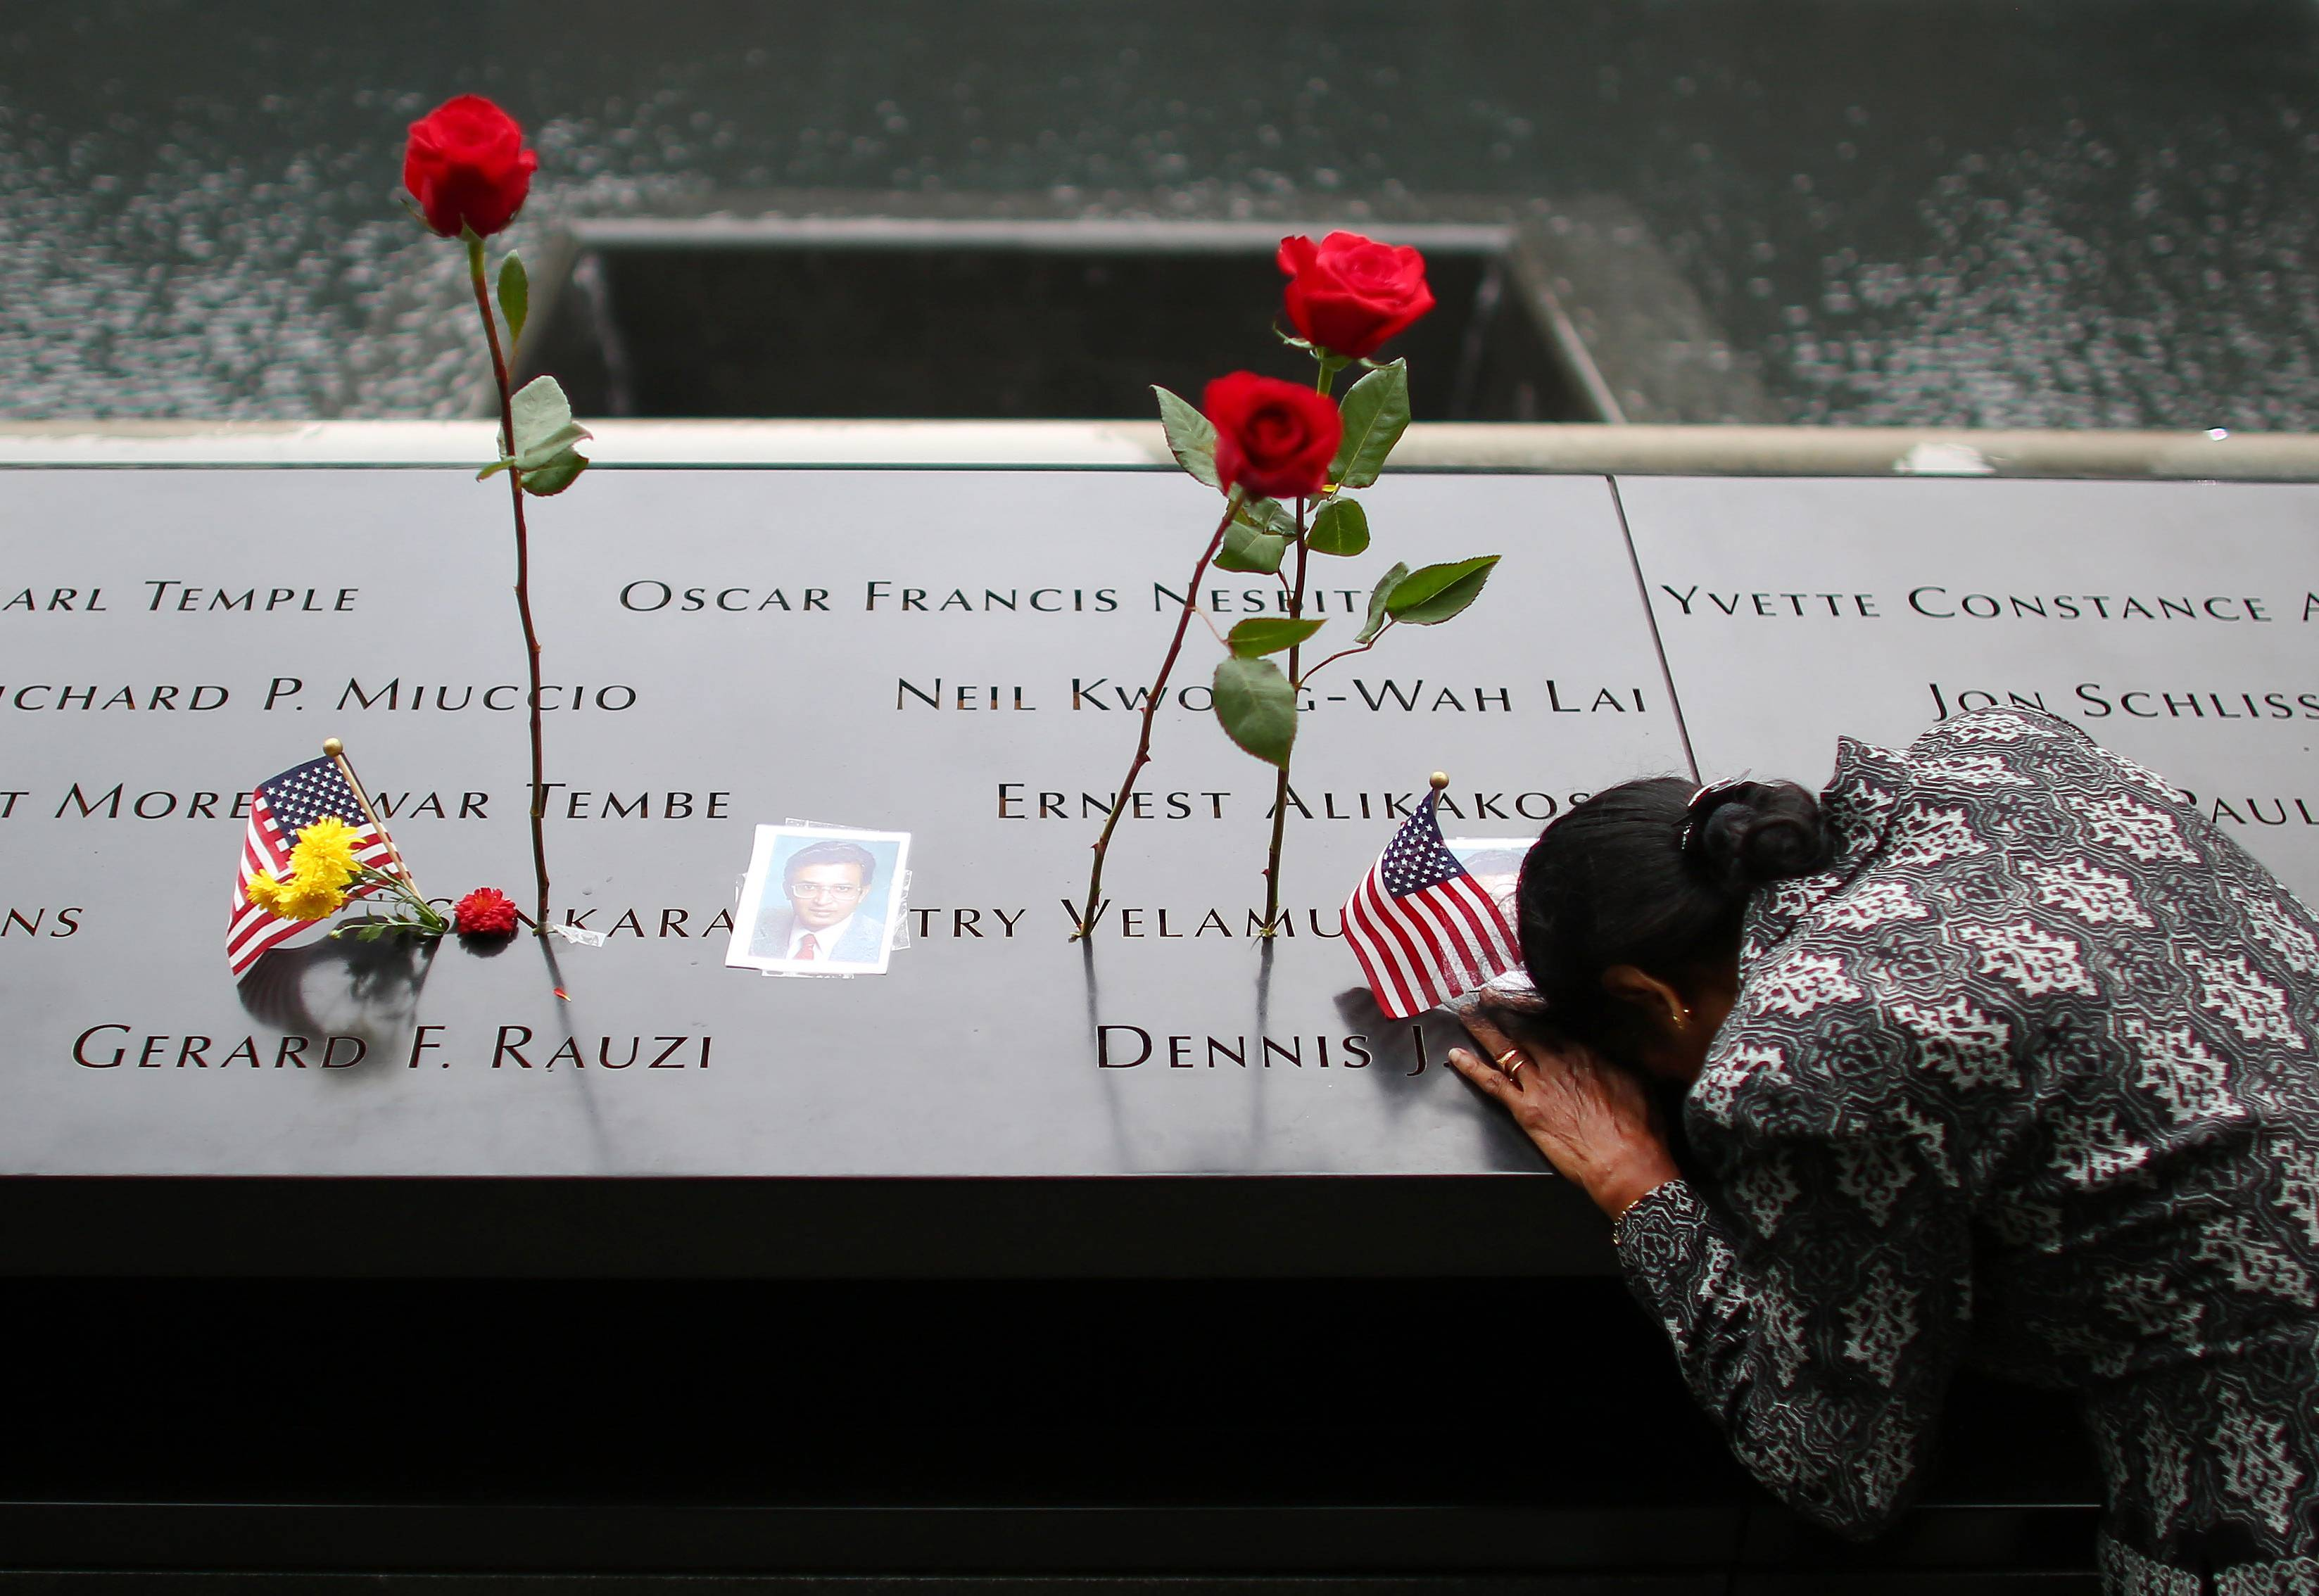 New terror fight casts shadow over 9/11 ceremonies